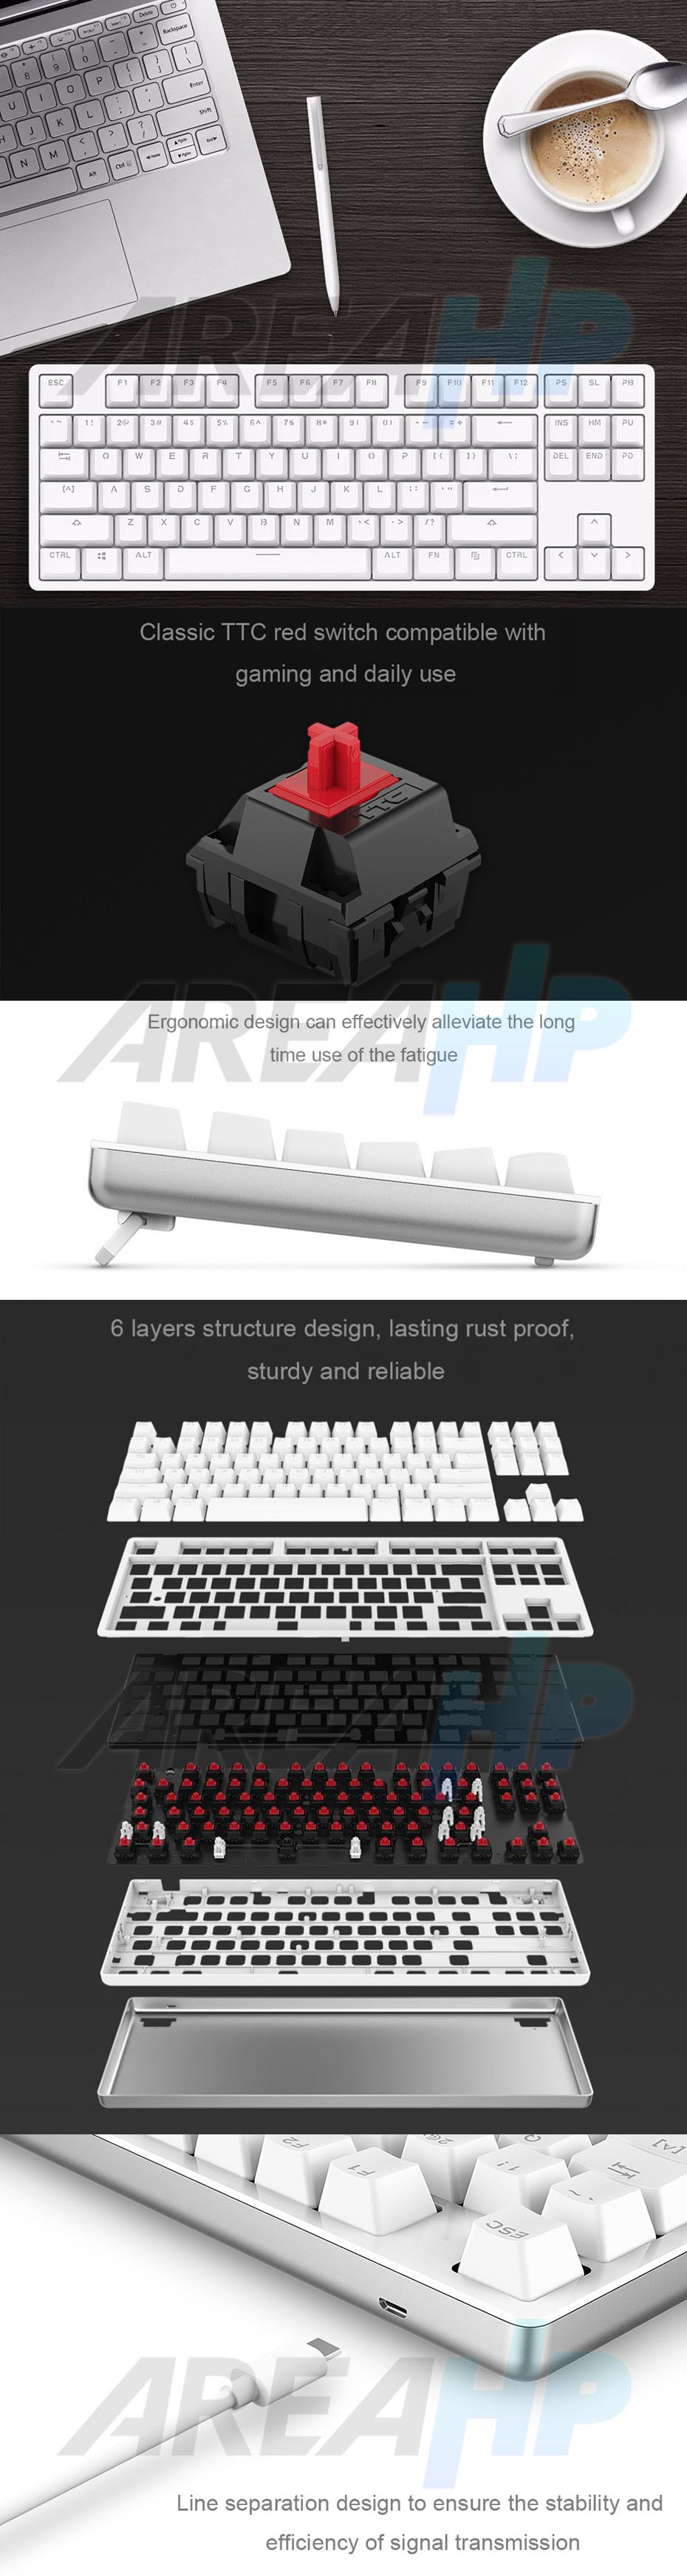 Xiaomi Yuemi Mechanical Keyboard TTC Red Switch Original Overview